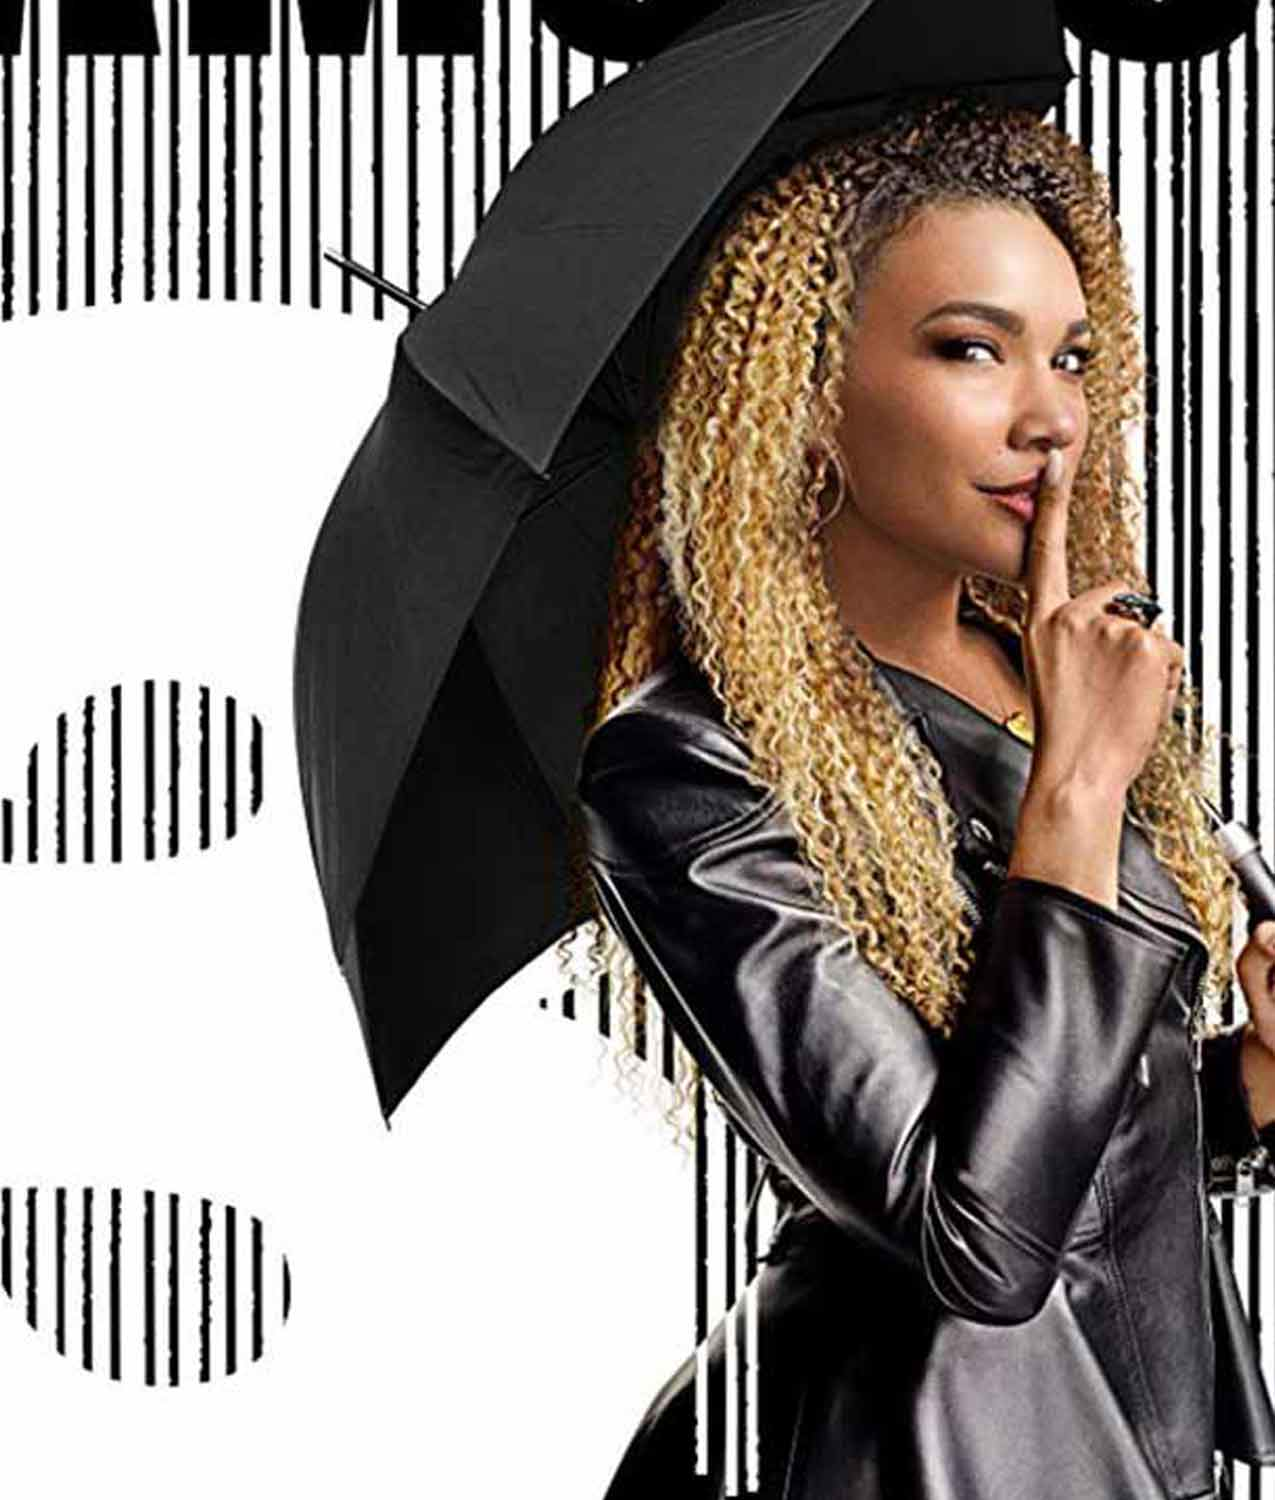 d20dfe4d3 The Umbrella Academy Allison Hargreeves Leather Jacket - Jackets Creator